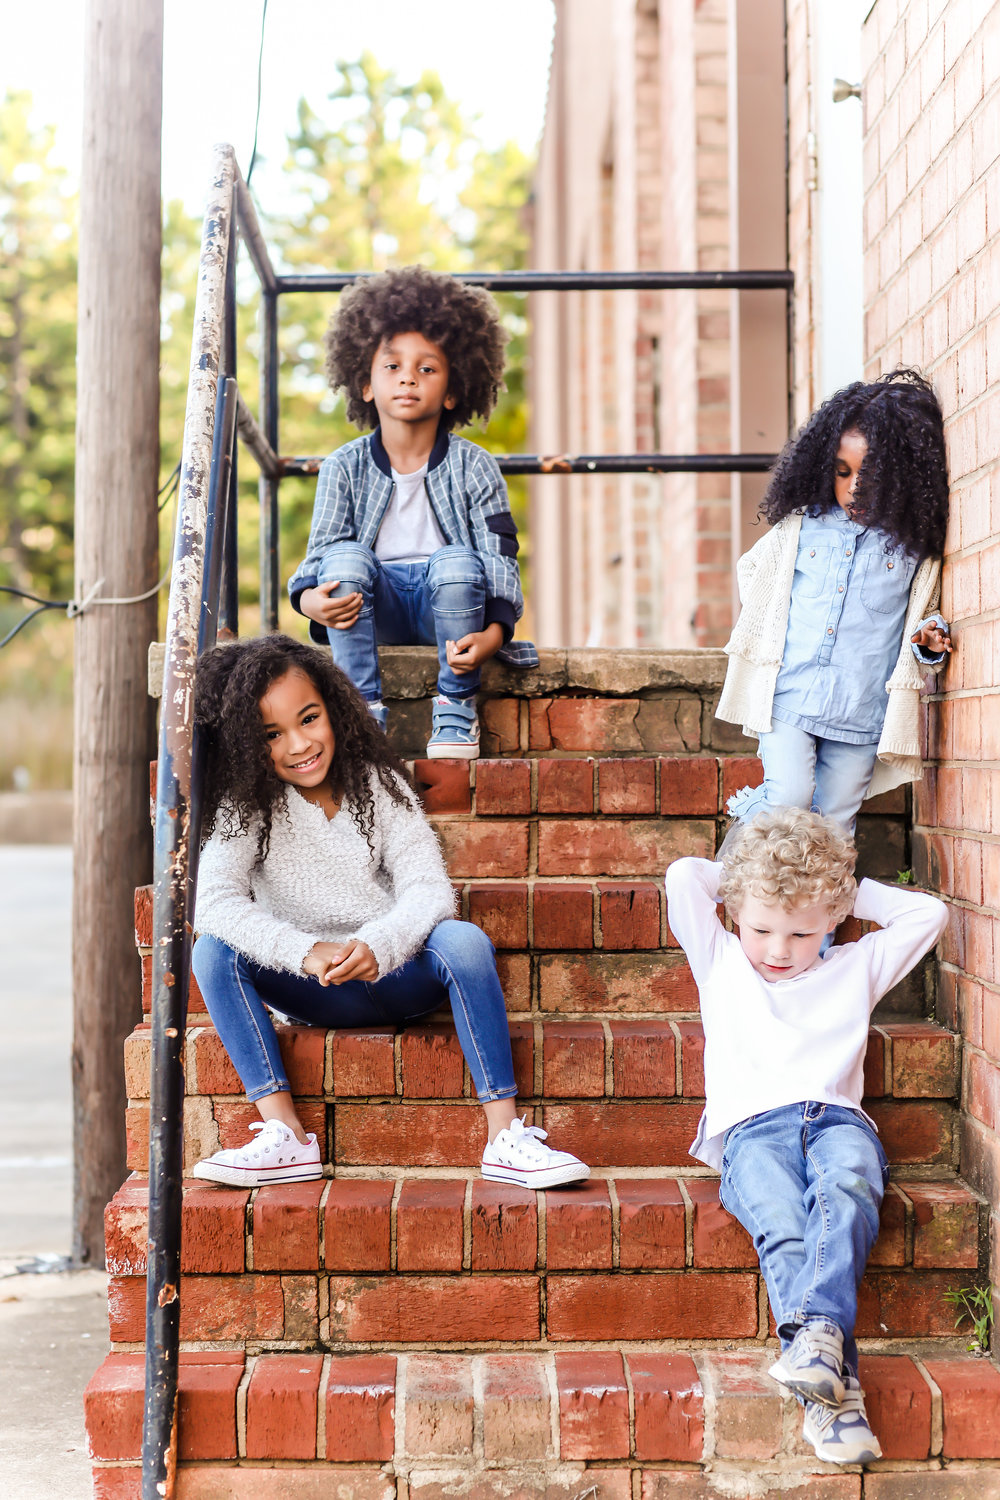 #CurlyLittlesCampaign - Your professional guide to styling and maintenance tips for your curly kid's hair.